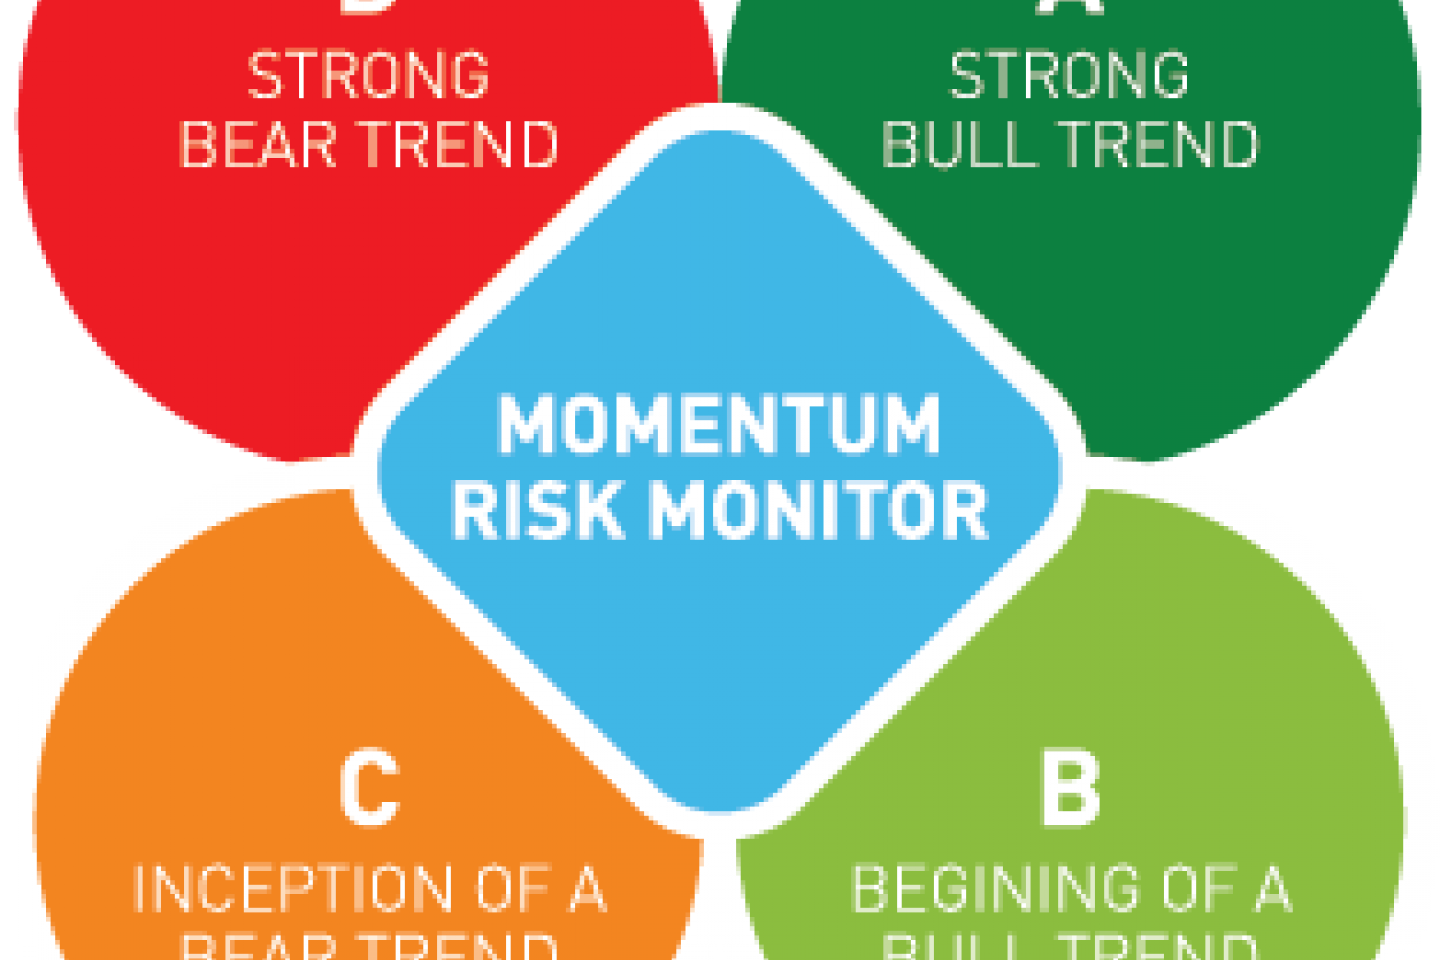 Momentum risk graphic